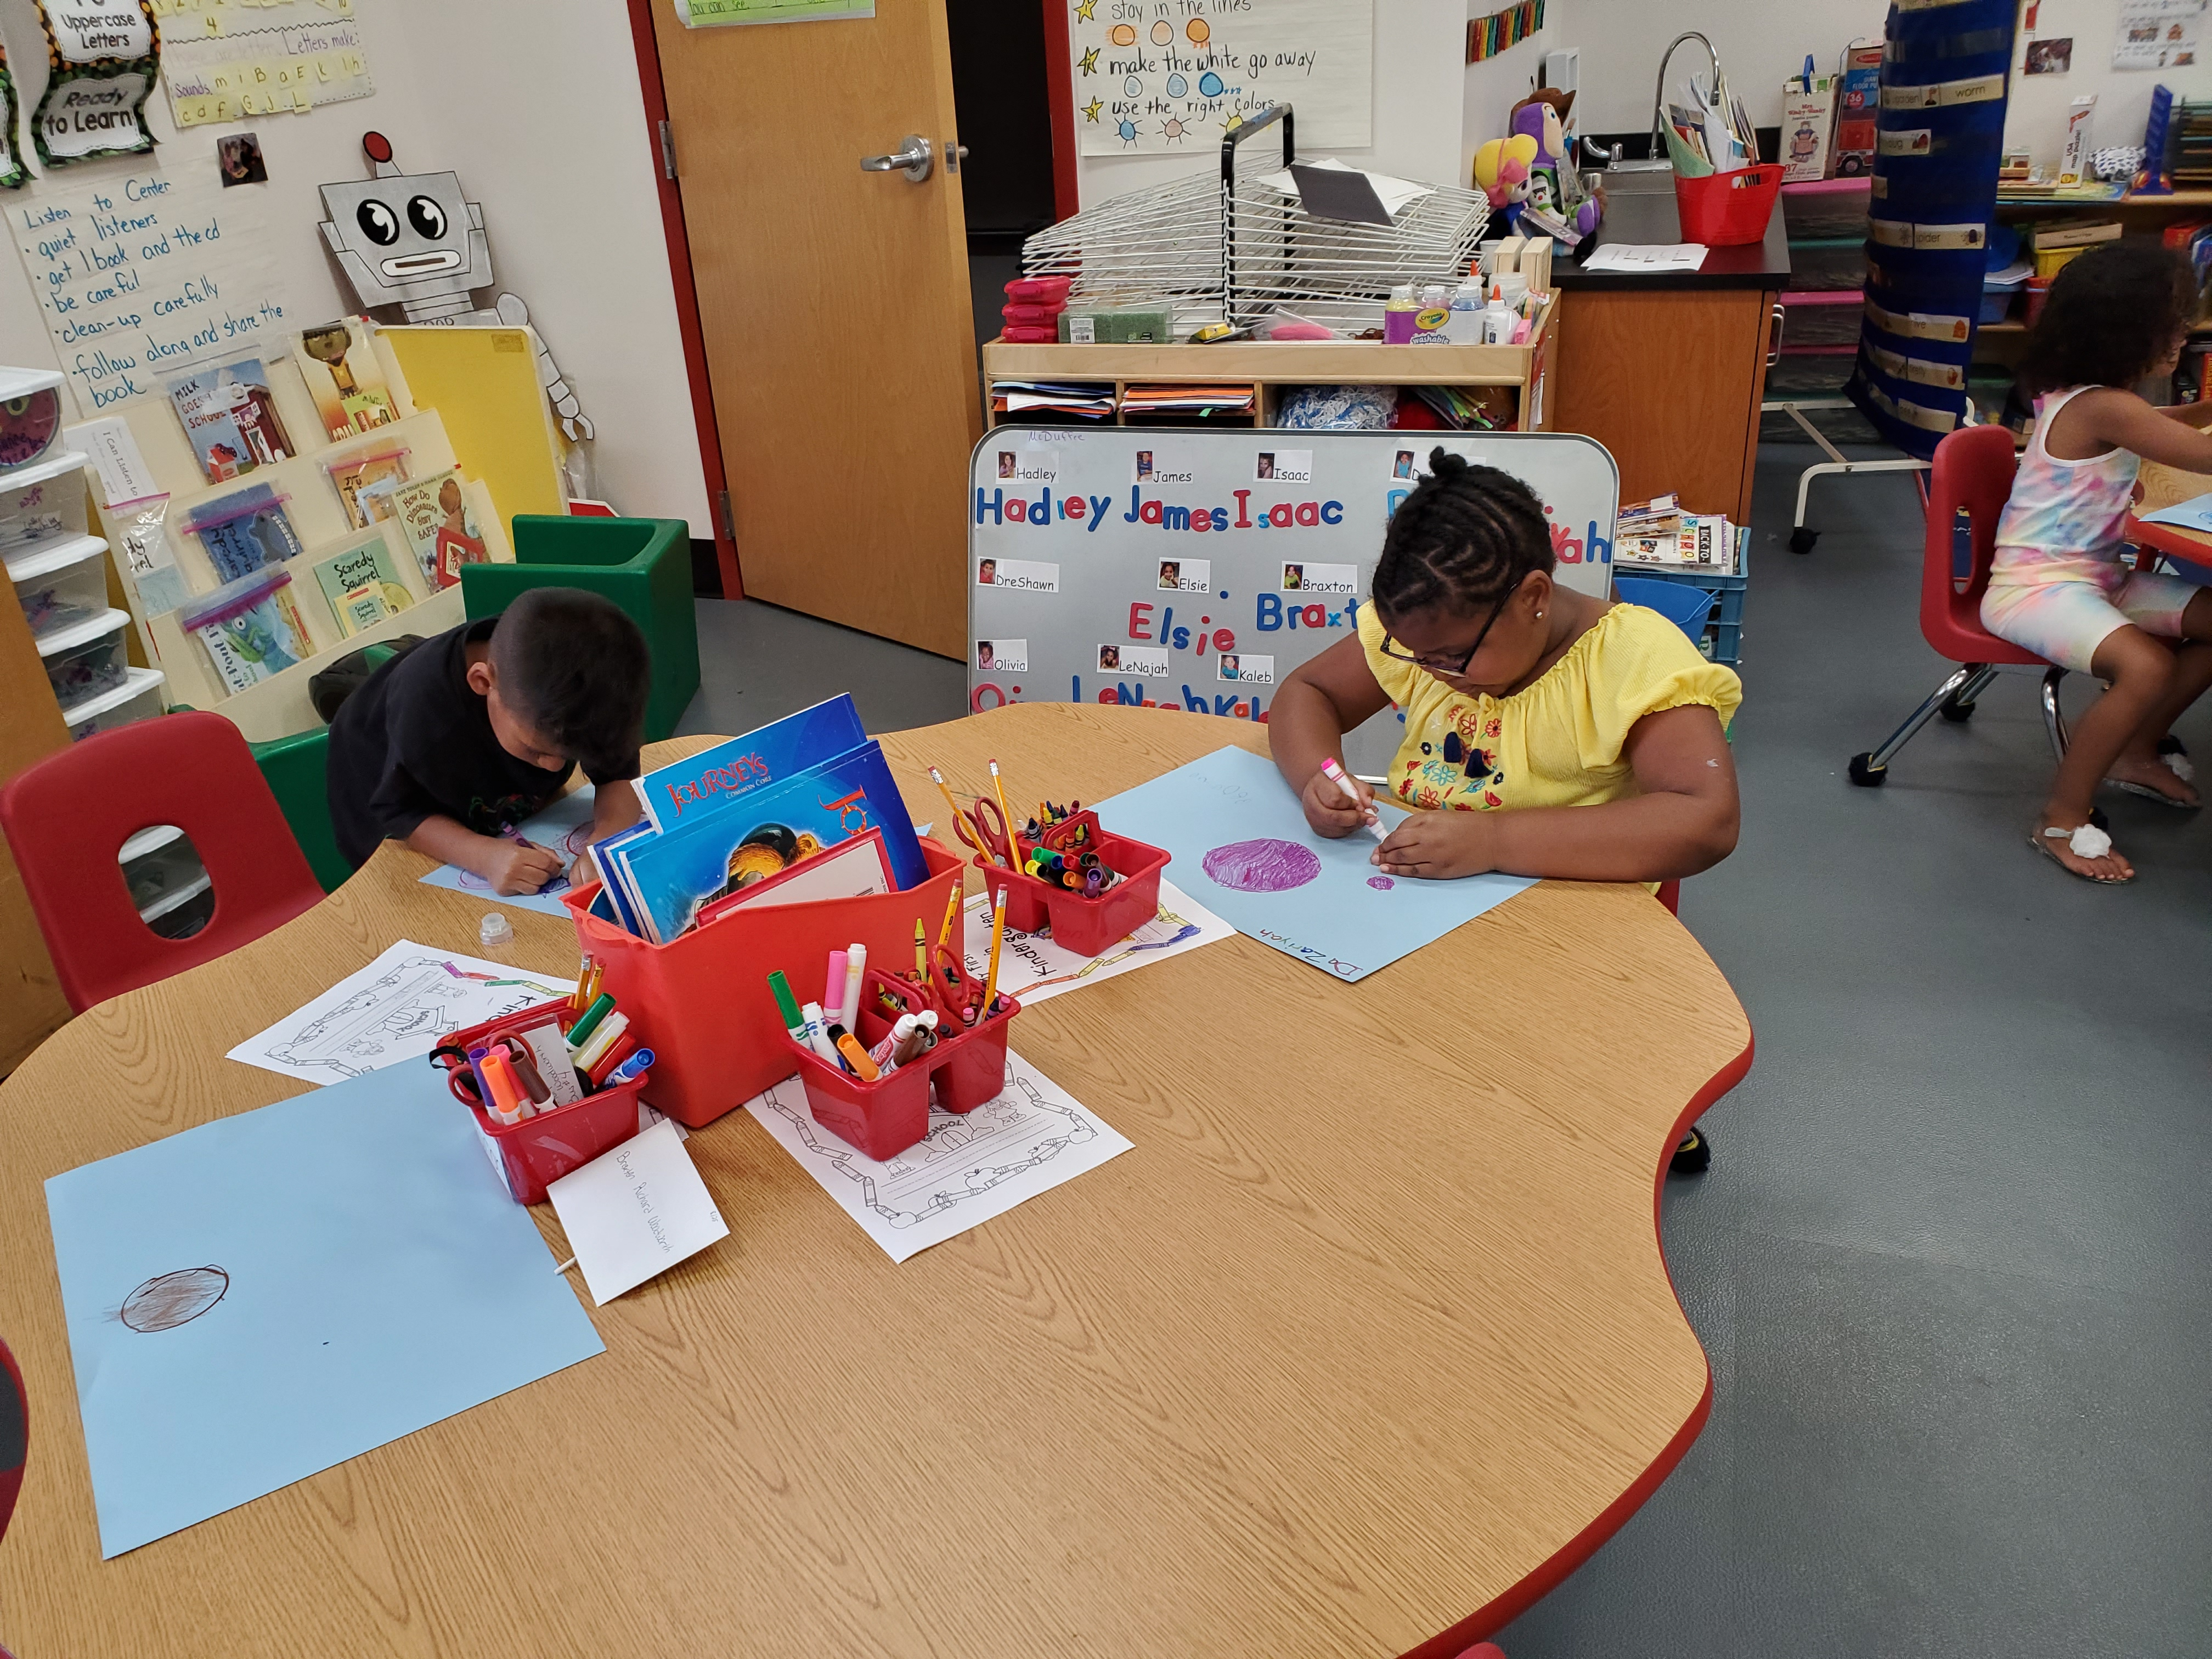 Two students sitting on a table drawing and painting circles on their own piece of paper.